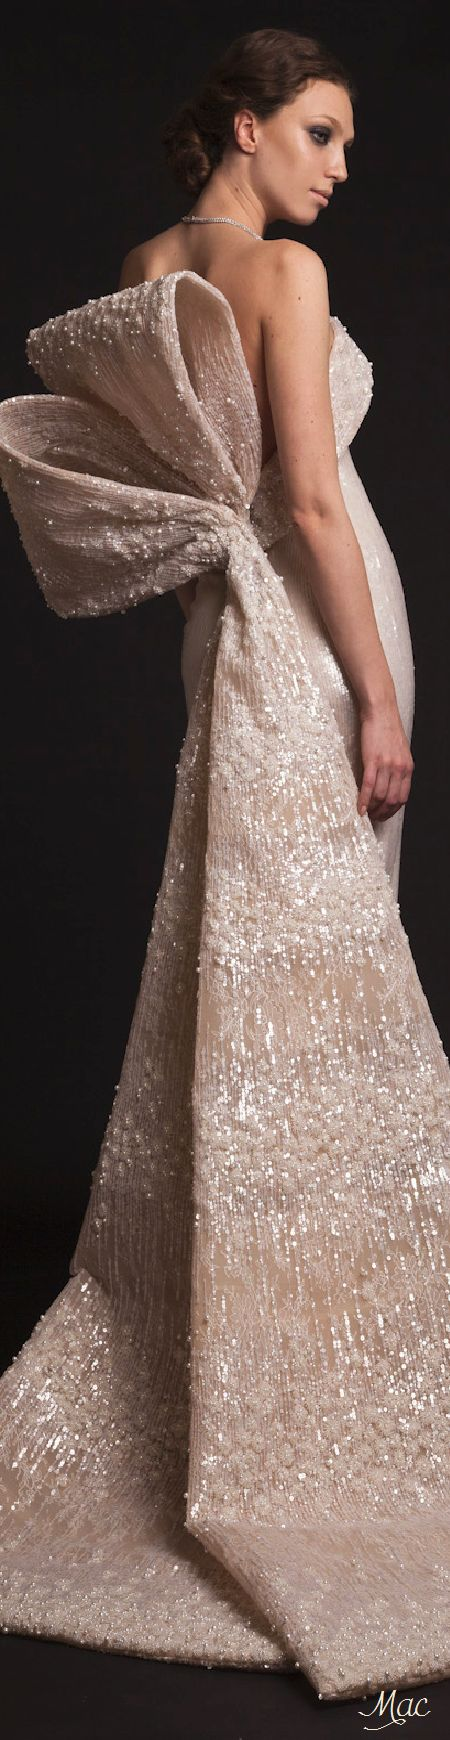 Krikor Jabotian ~ Couture Blush Sequinned Gown w Large Back Bow, Spring 2015